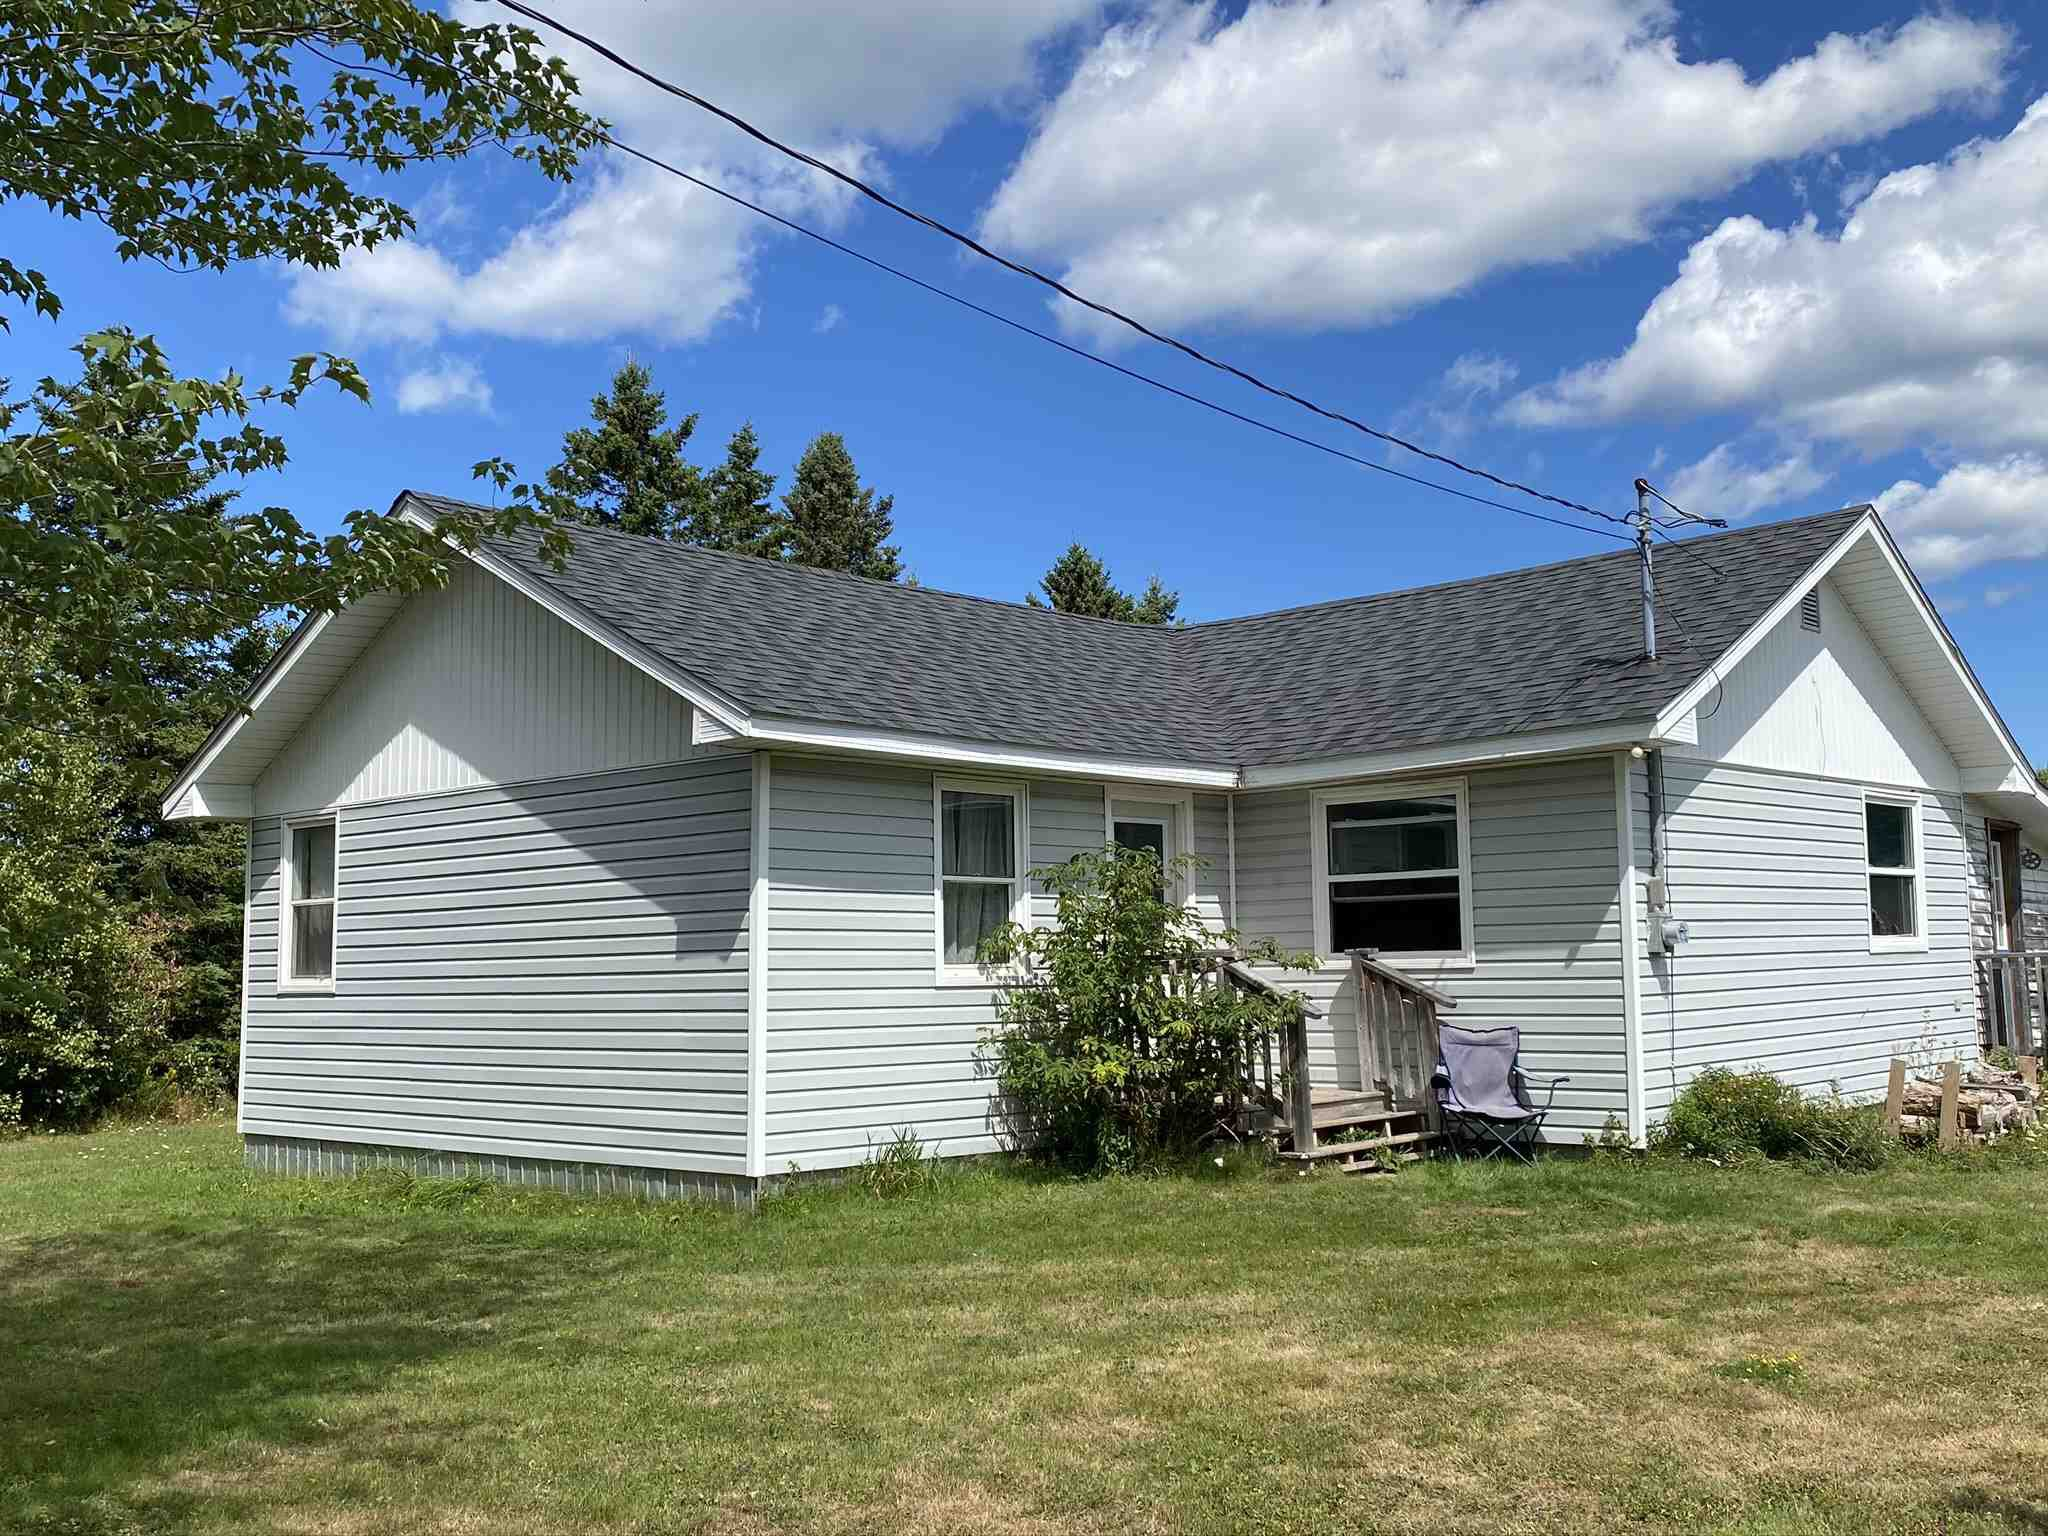 Main Photo: 1490 Gunn Road in East Branch: 108-Rural Pictou County Residential for sale (Northern Region)  : MLS®# 202024667